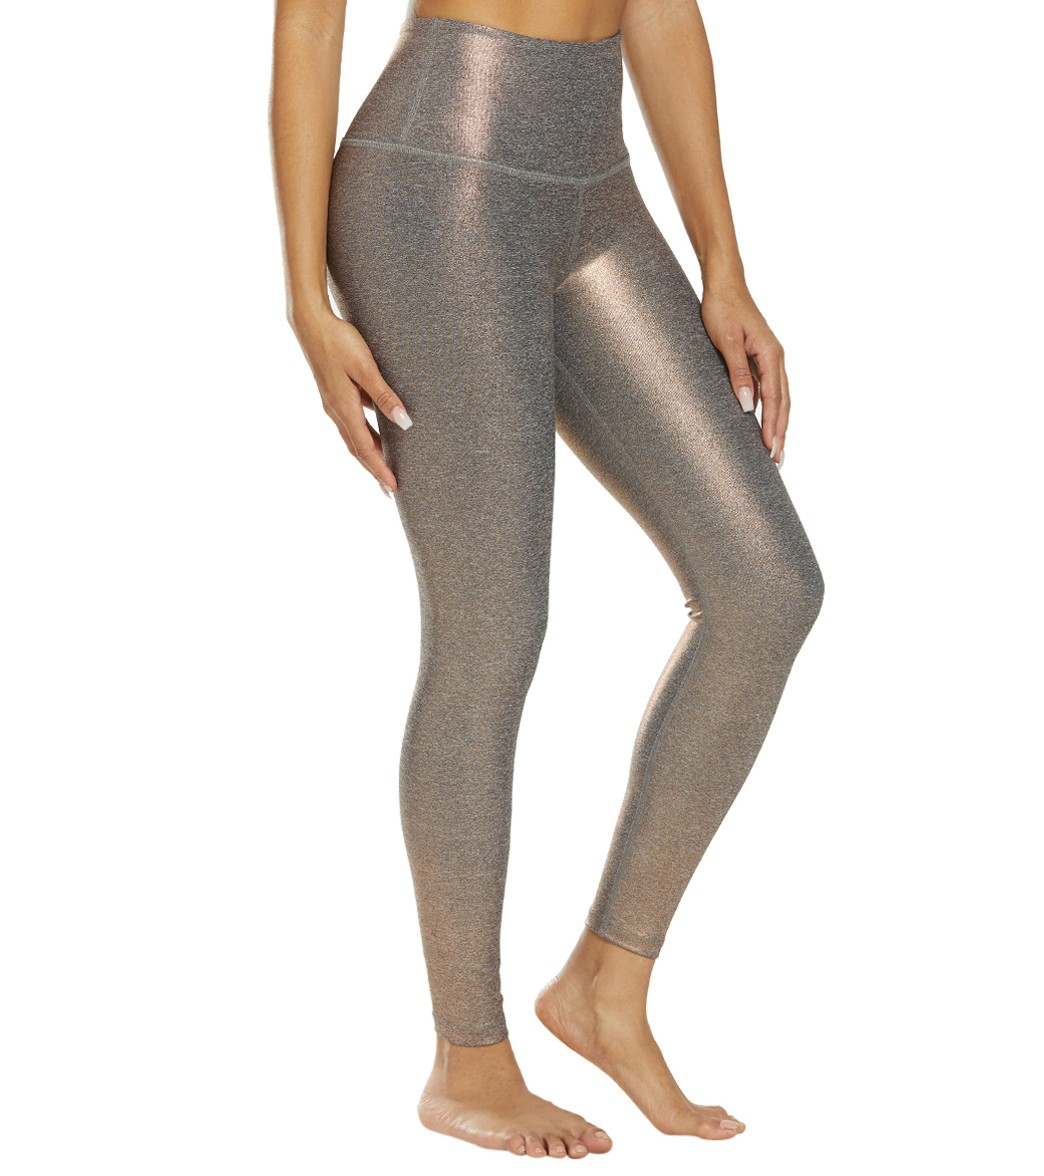 75e5d7f473fe74 Beyond Yoga Dusted High Waisted 7/8 Yoga Leggings at YogaOutlet.com ...